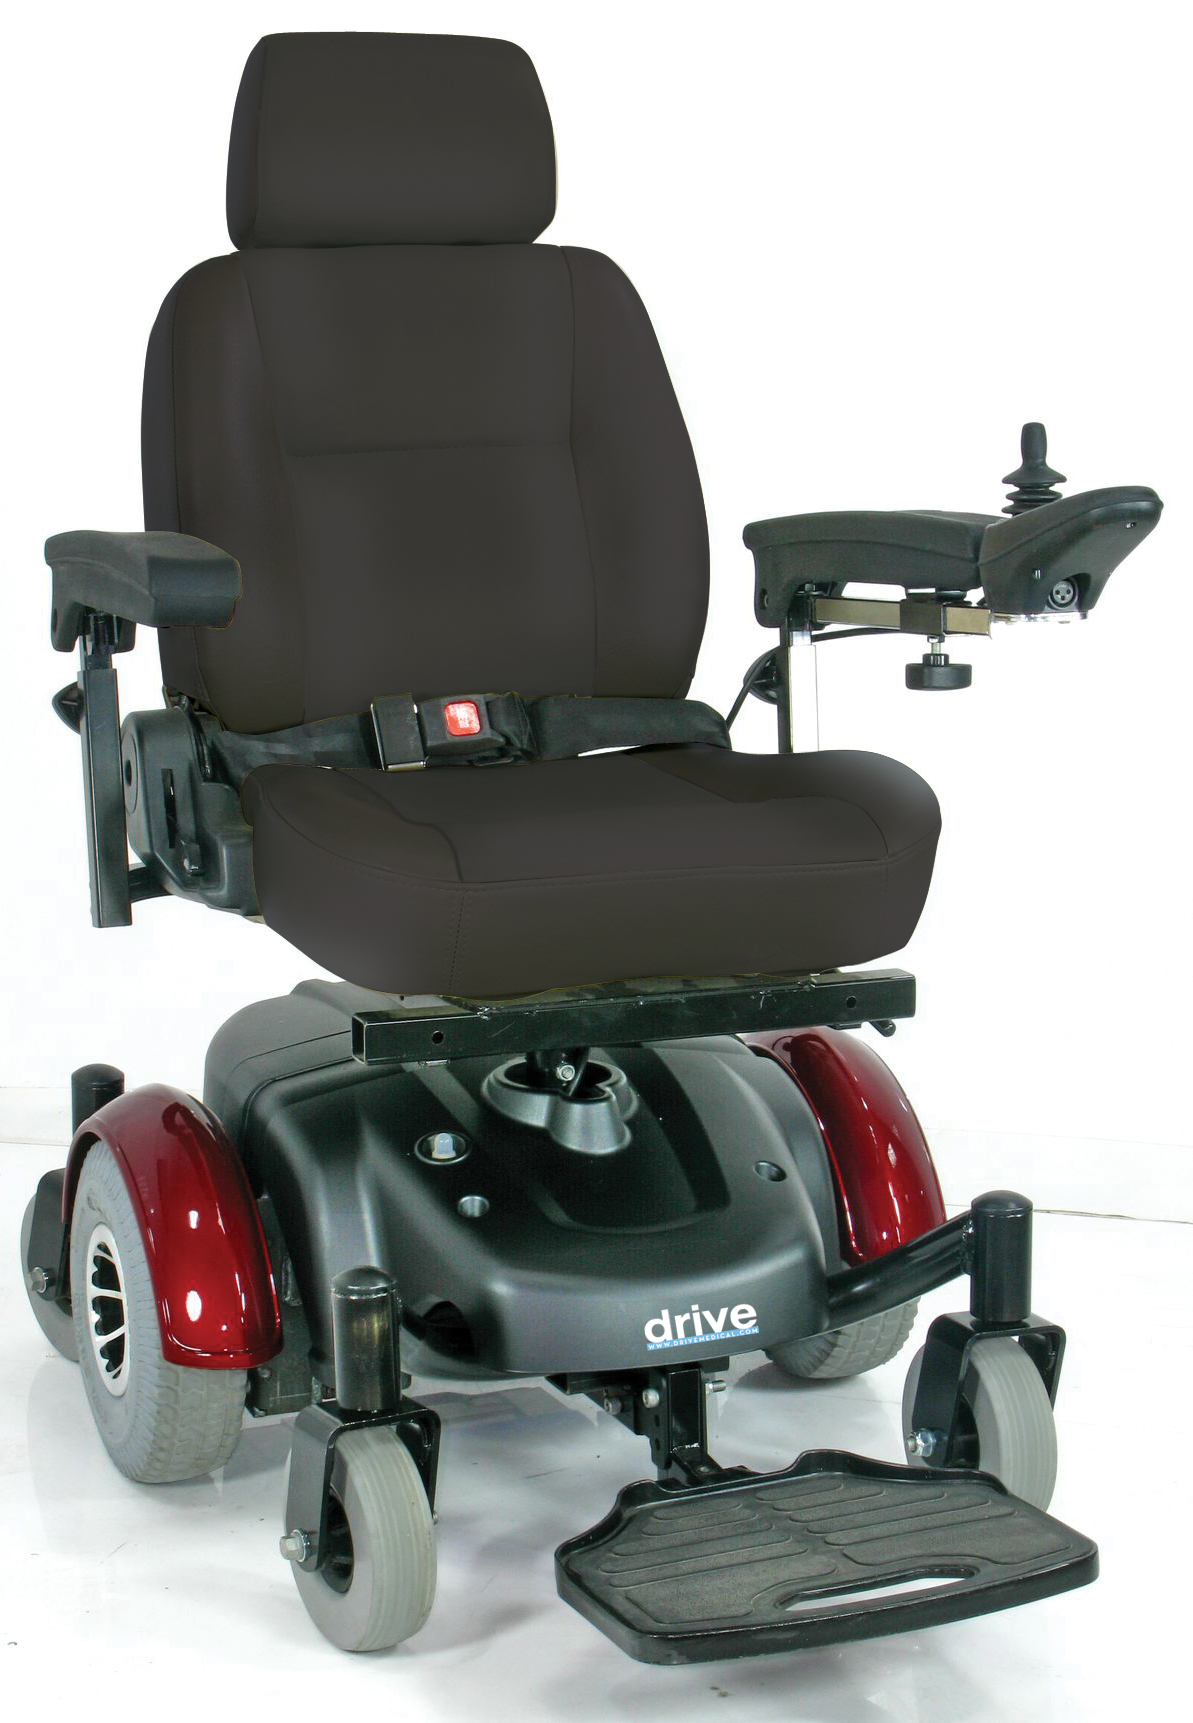 "Image EC Mid Wheel Drive Power Wheelchair 20"" - 2800ecbu-rcl-20-powerchair2800ecbu-rcl_1.jpg"